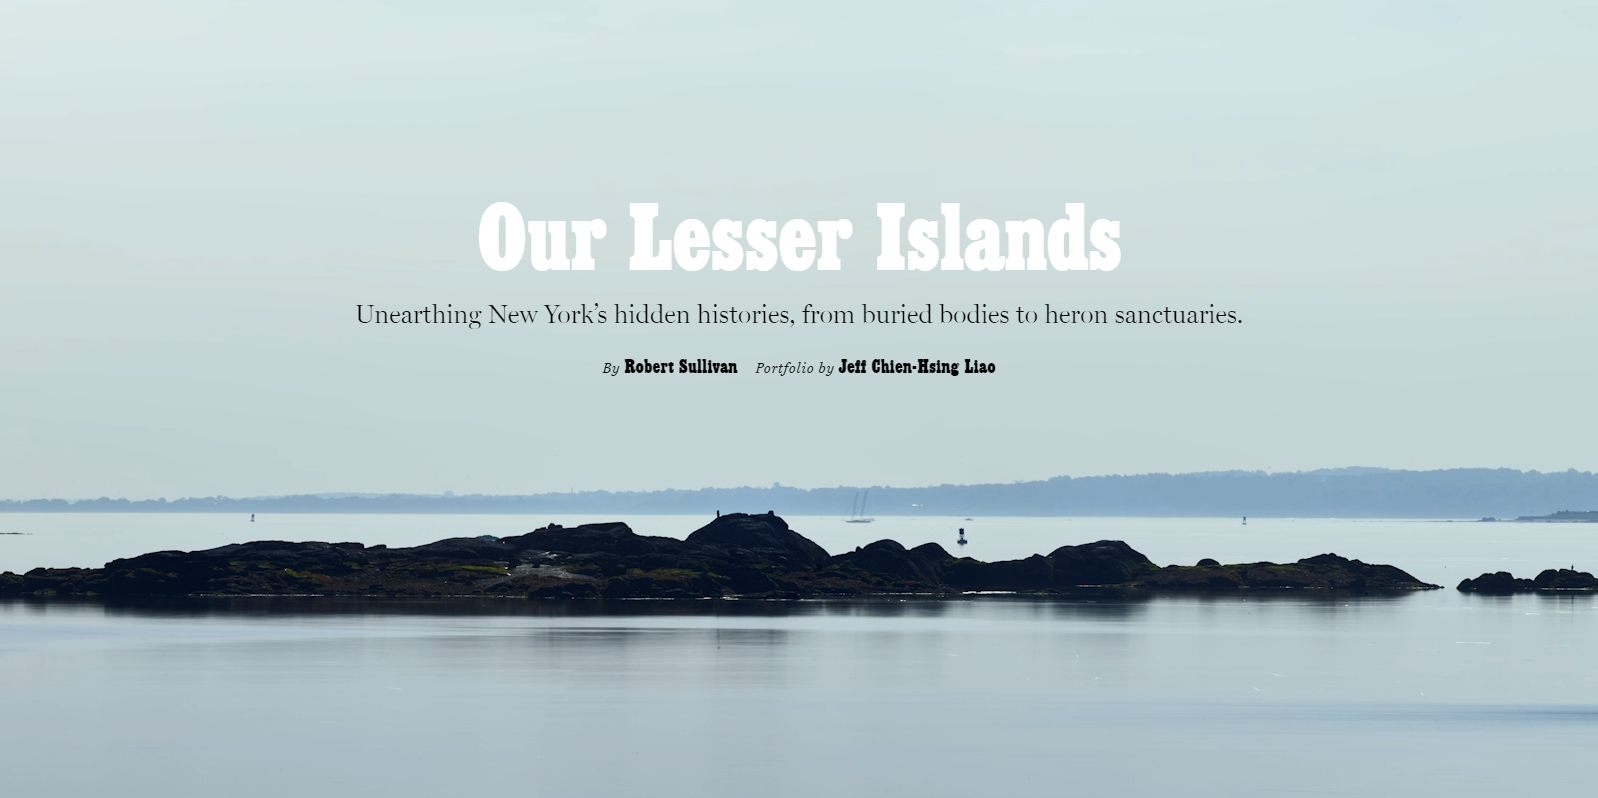 2019-08-21 11_13_36-Touring the Overlooked Islands of New York City.png